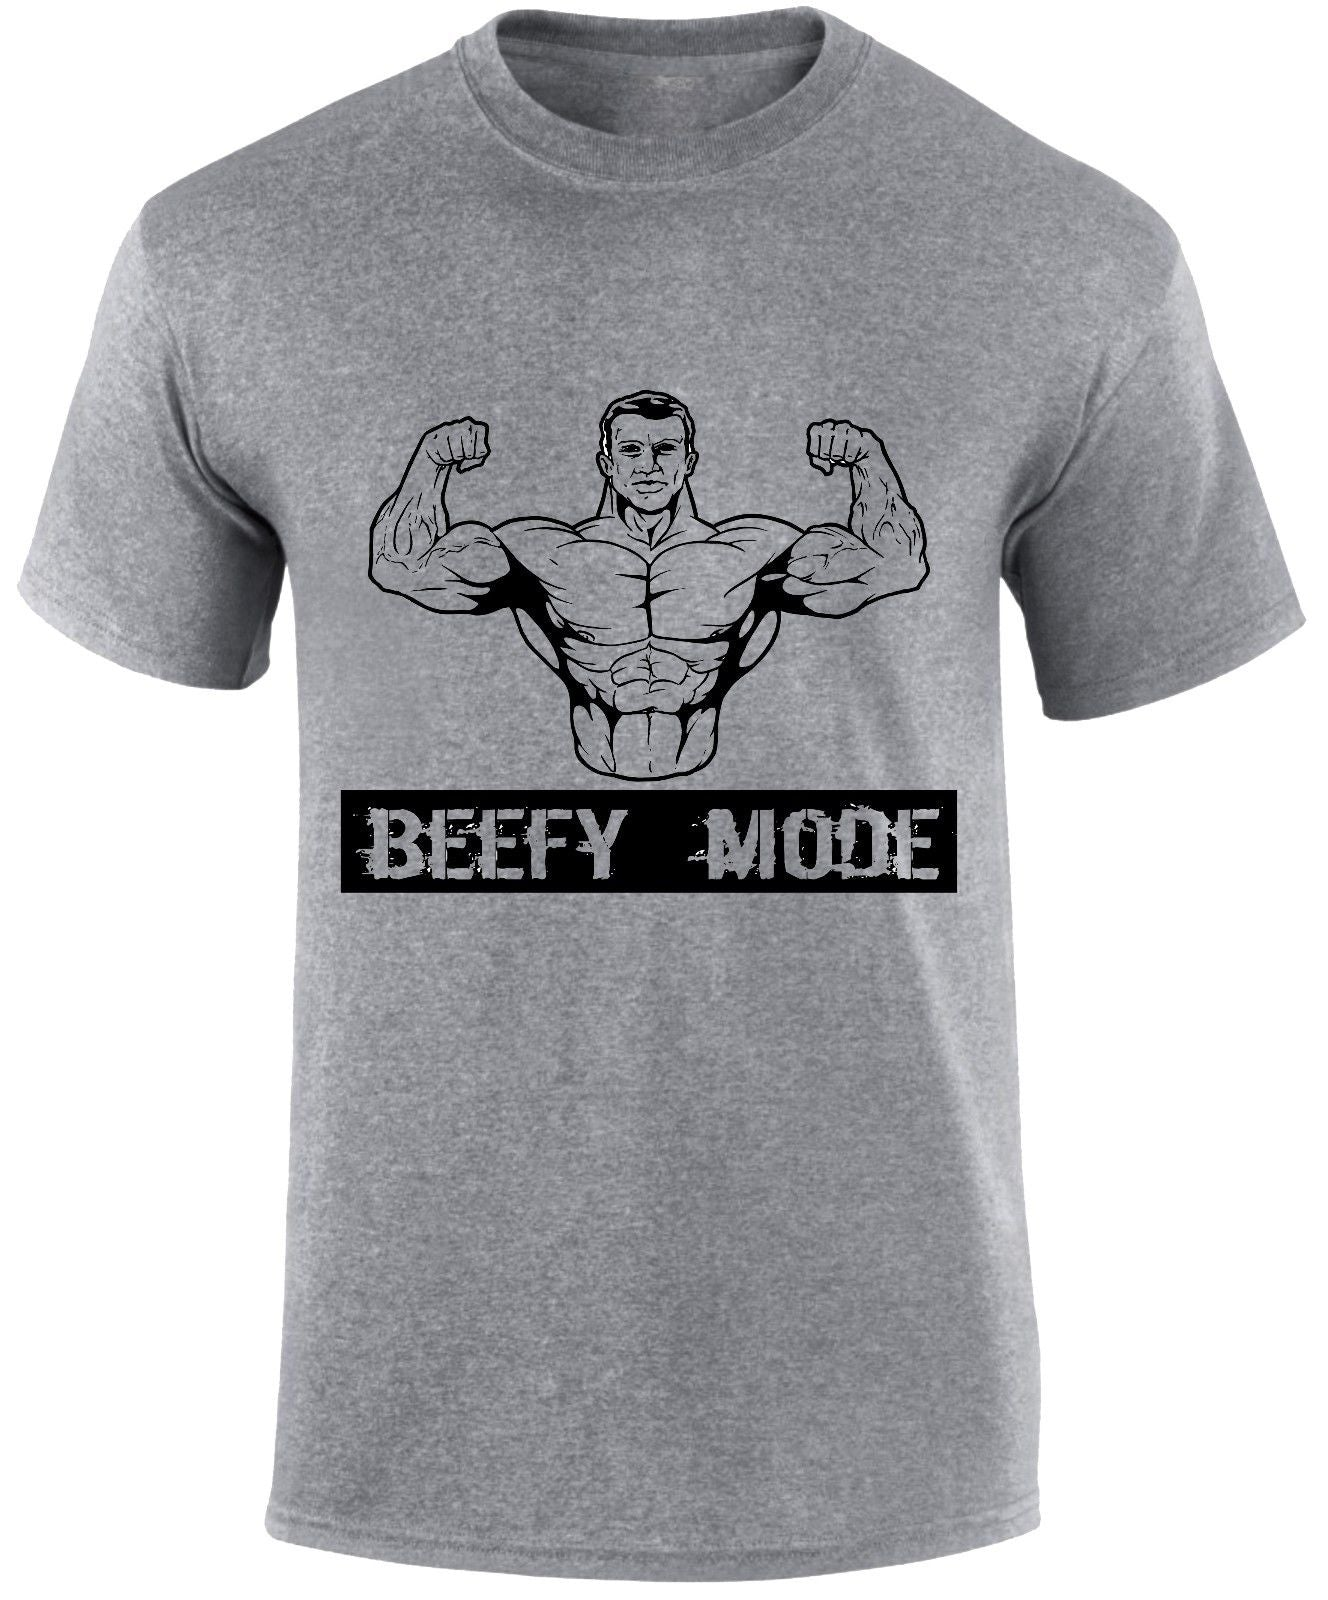 Beefy Mode - Bodybuilding/Lifting/Fitness - me's T-shirt - Cozzoo